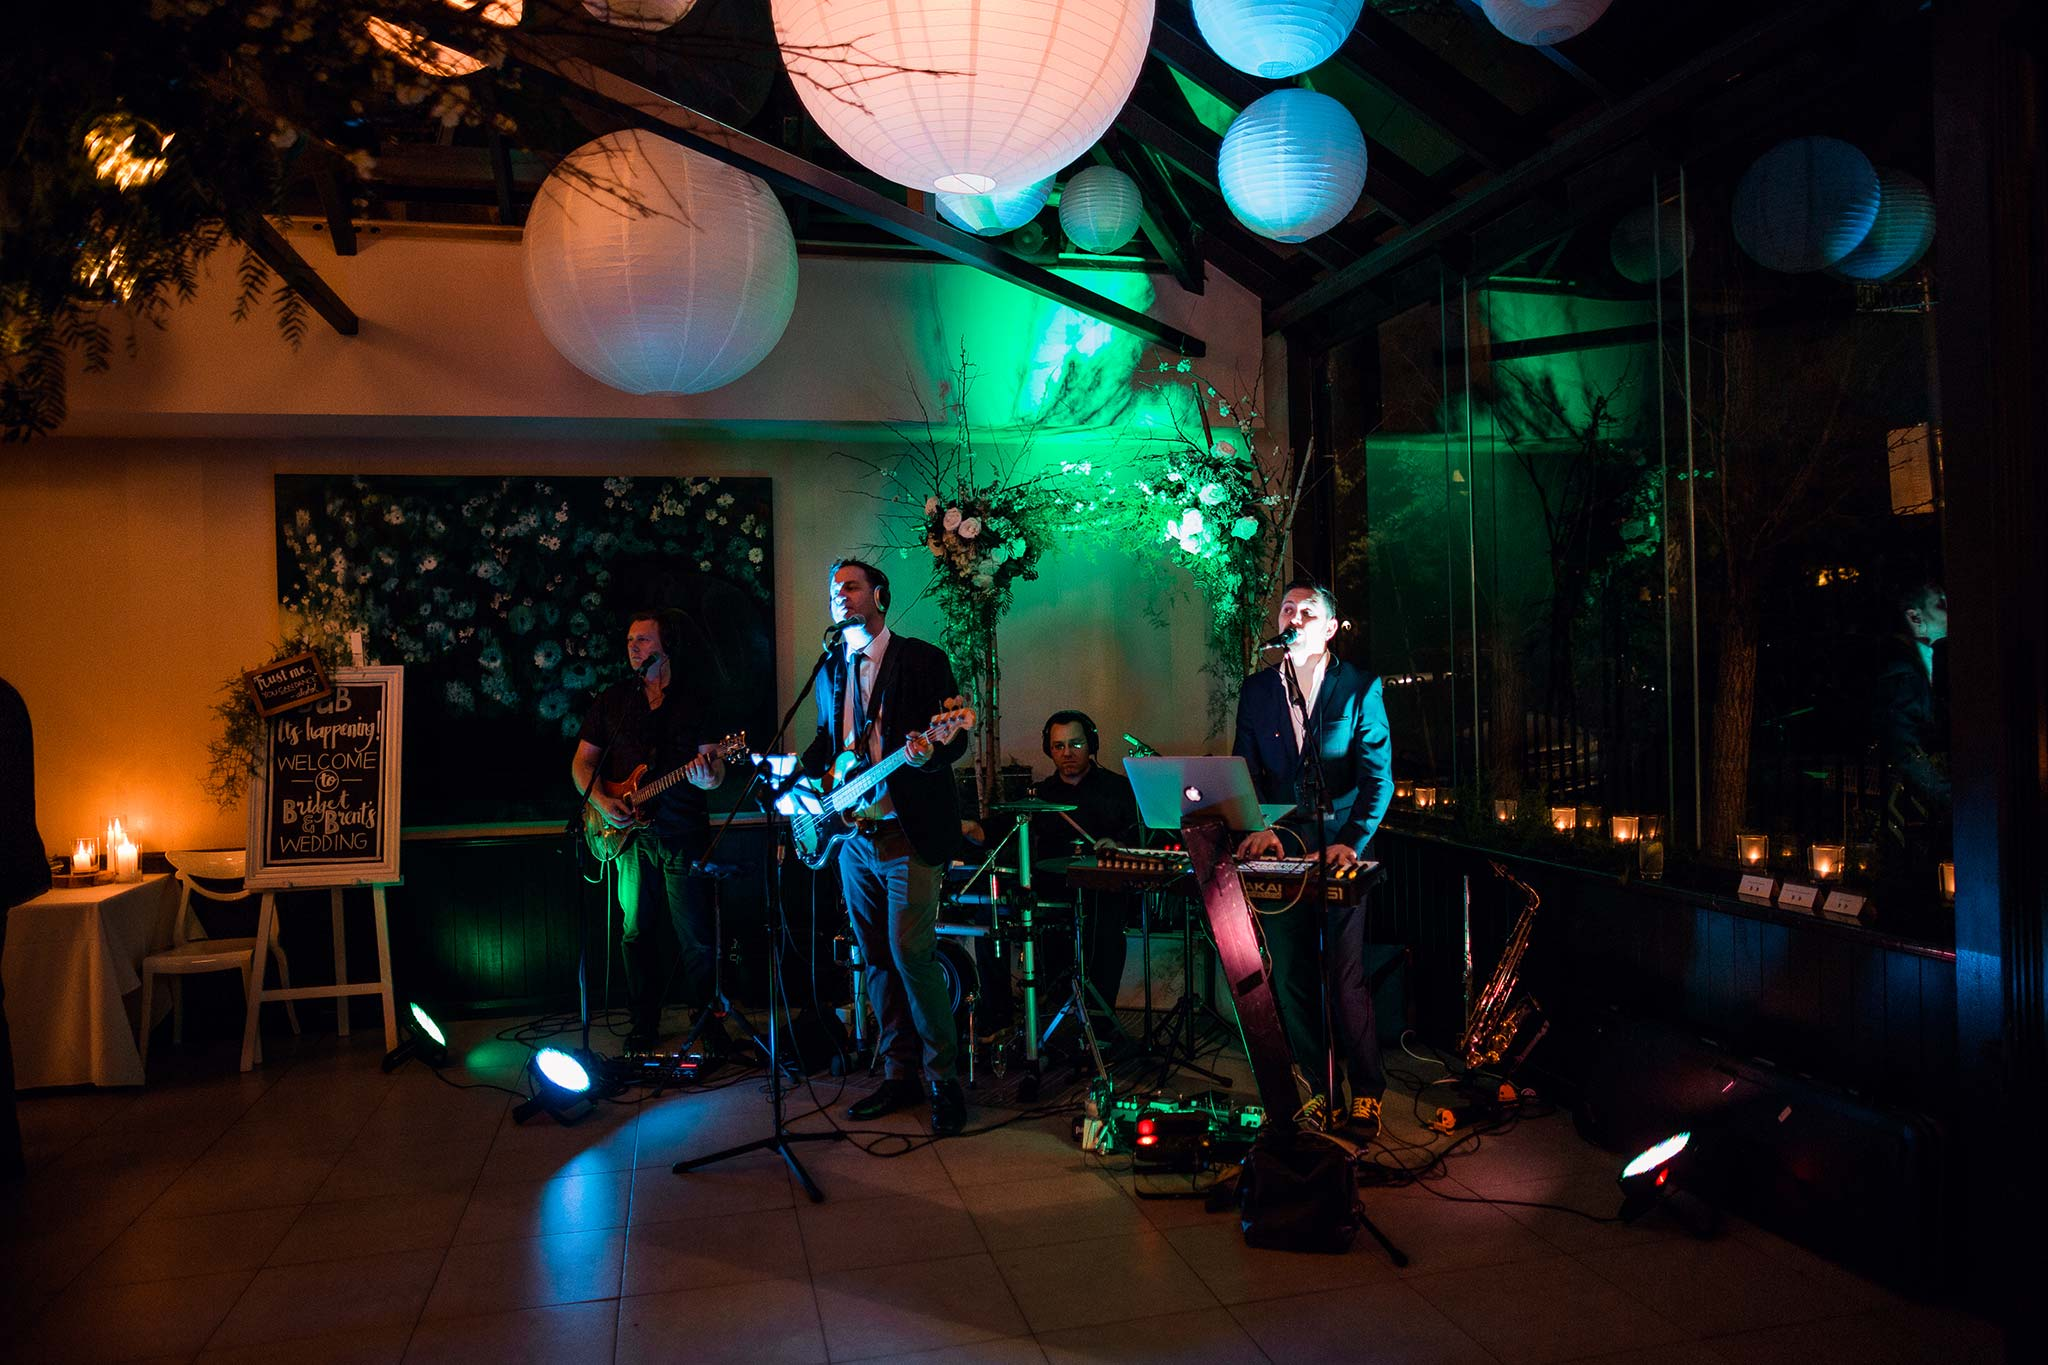 melbourne-fitzroy-st-andrews-conservatory-pumphouse-wedding-reception-band